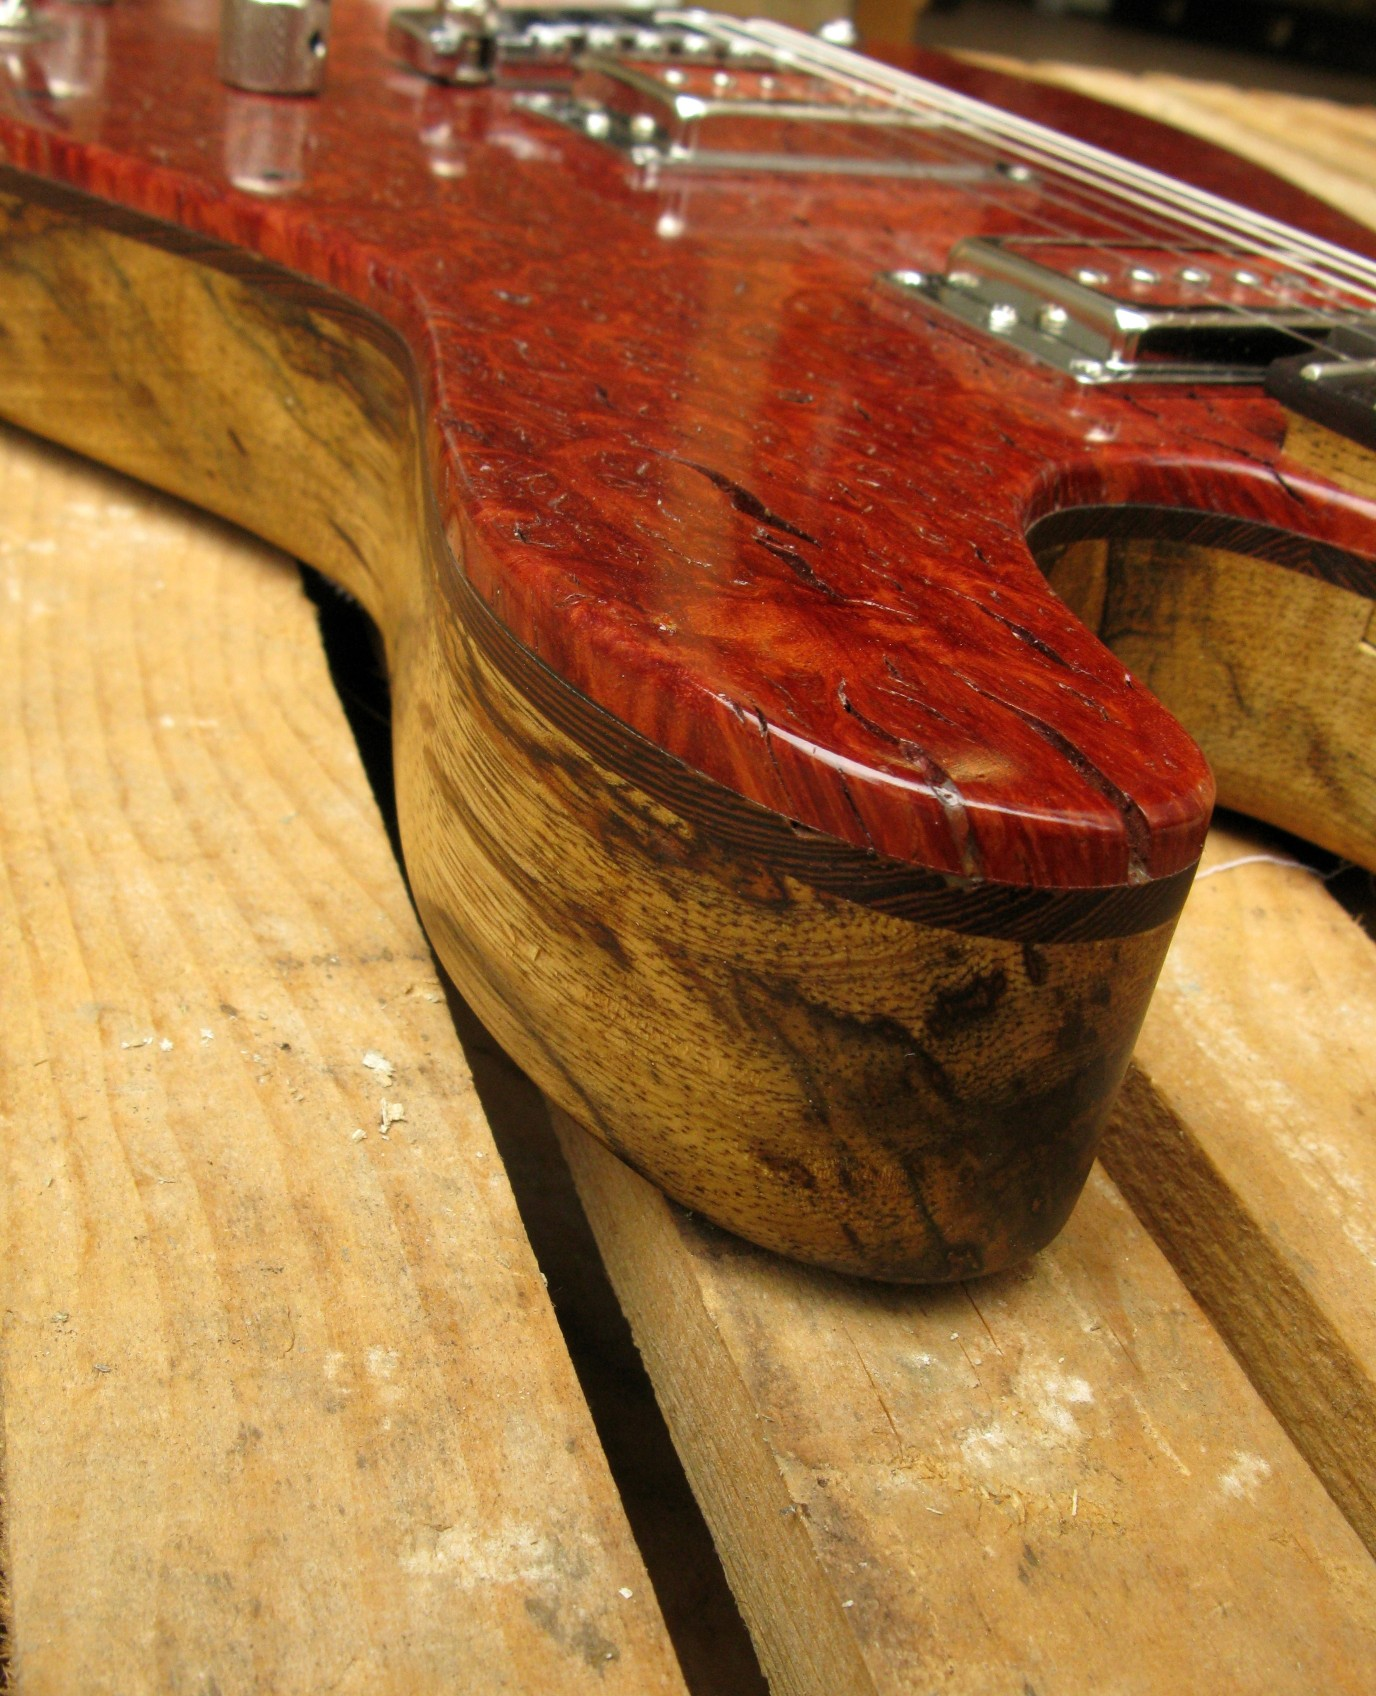 Spalla di una chitarra Telecaster in black korina e top burl red